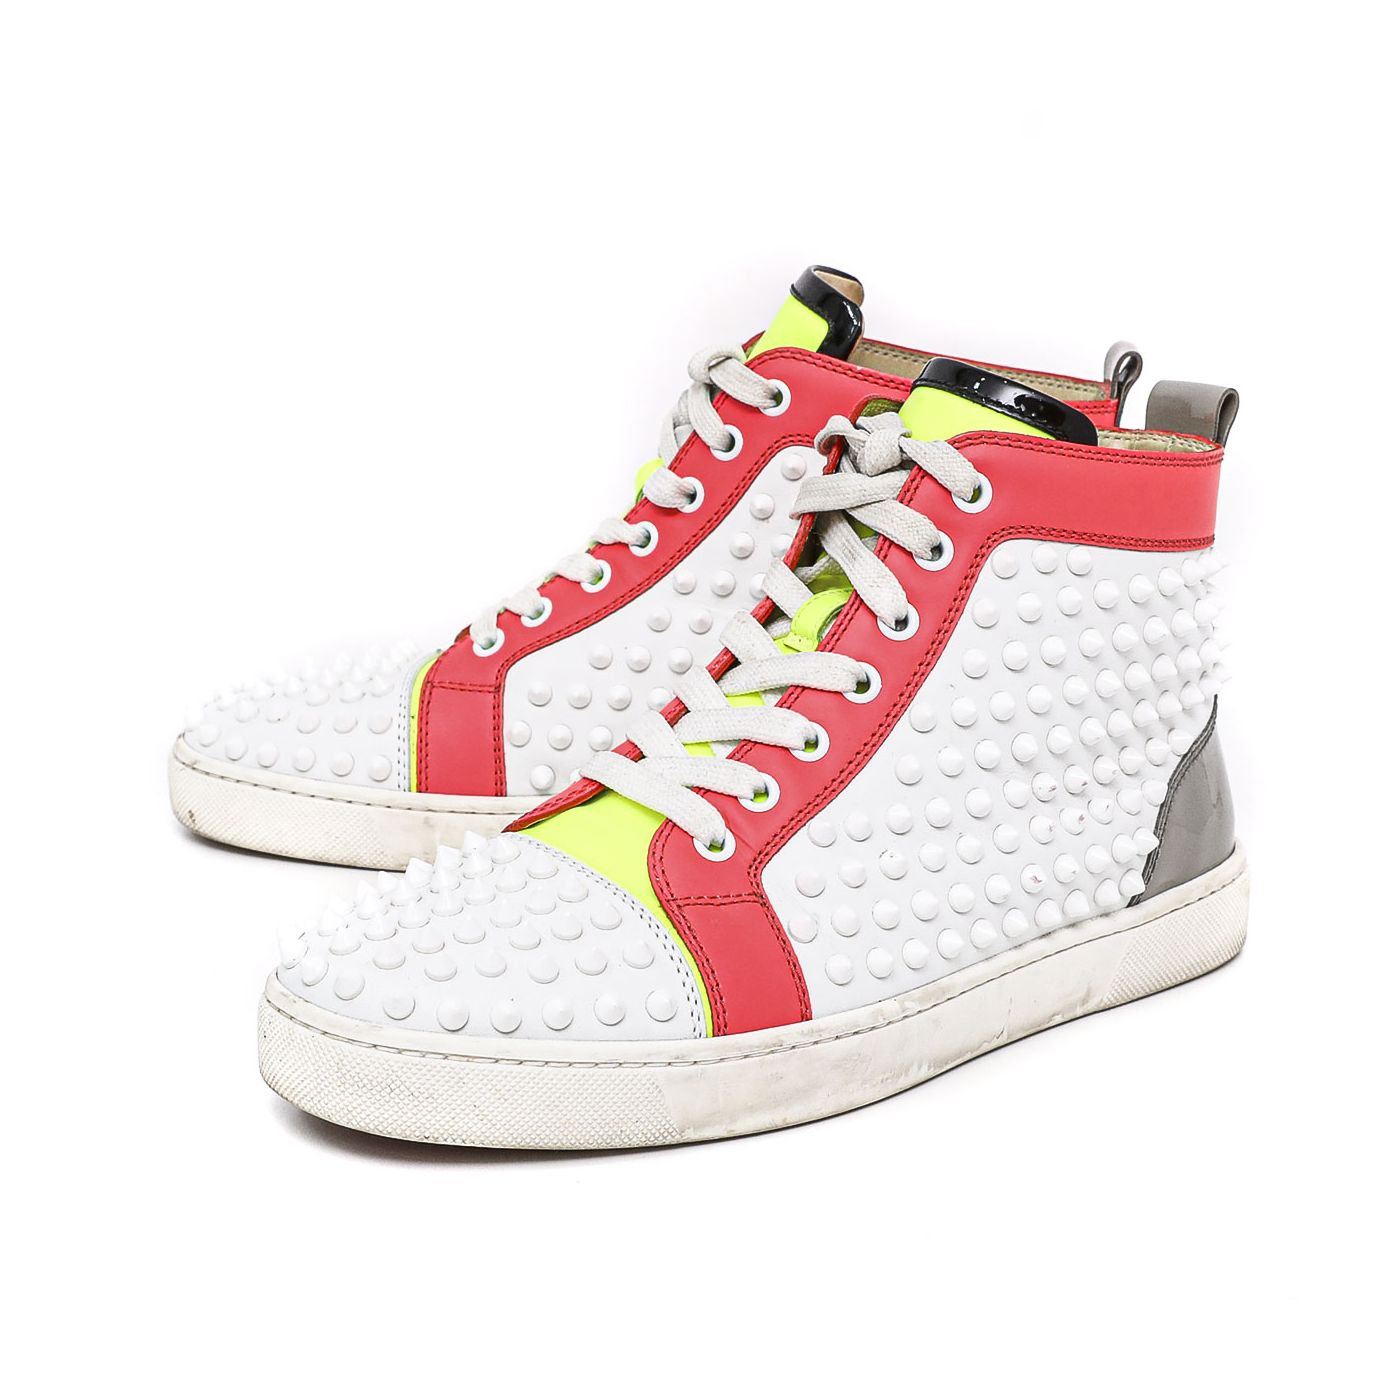 Christian Louboutin Multicolor Louis Flat Sneakers